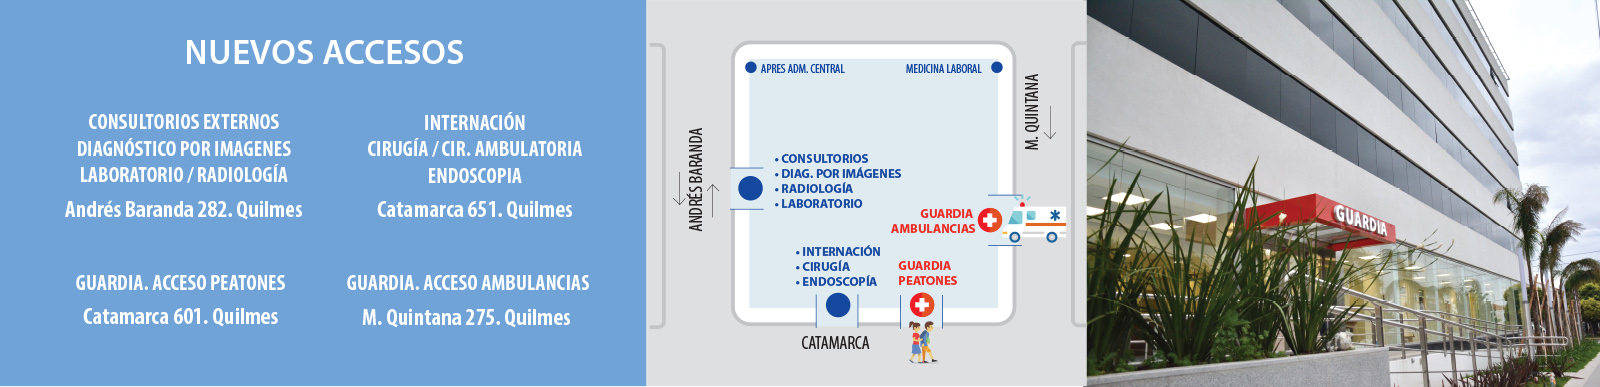 Esquema de atención ambulatoria